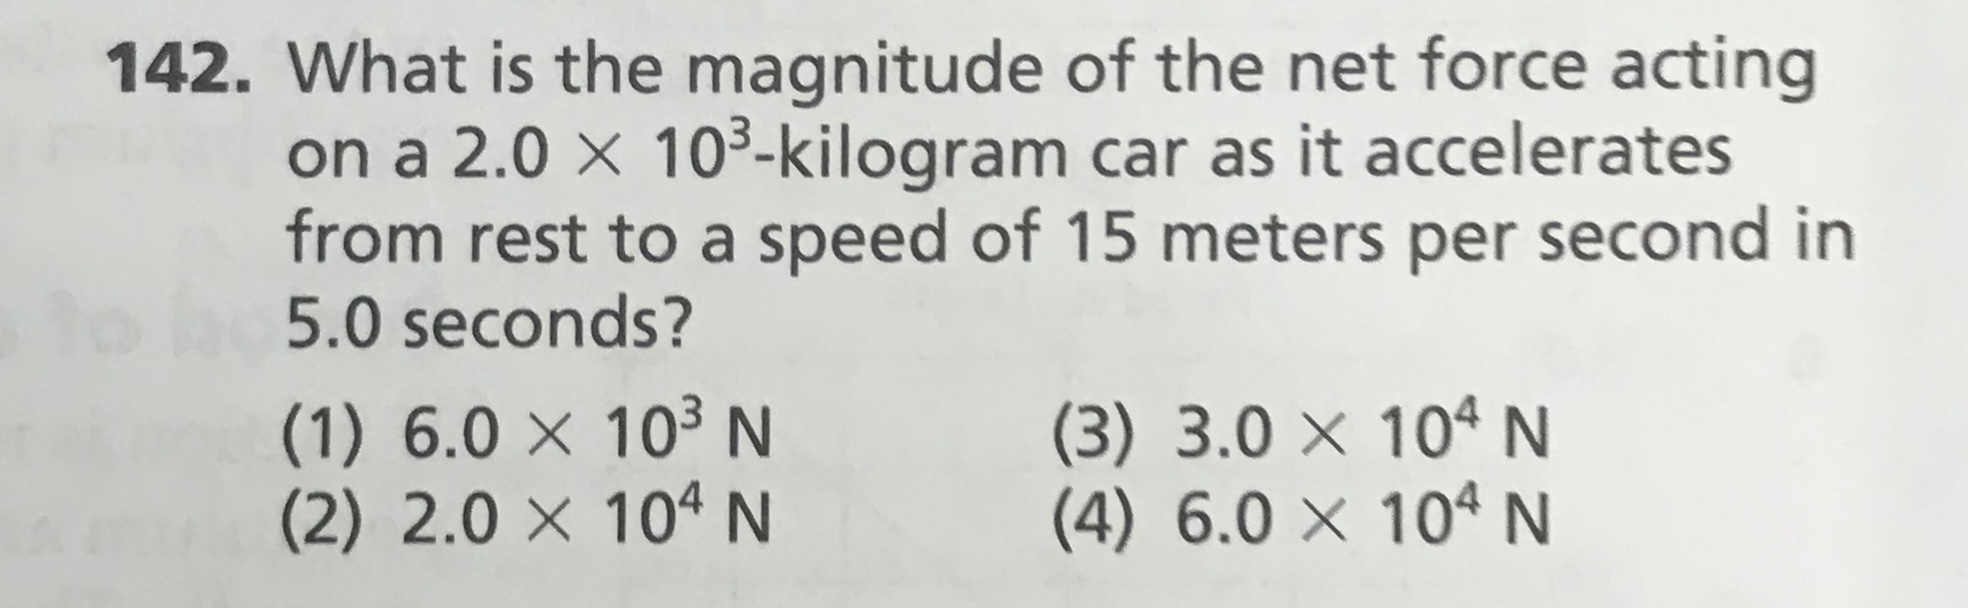 142. What is the magnitude of the net force acting on a 2.0 × 10³-kilogram car as it accelerates from rest to a speed of 15 meters per second in 5.0 seconds? to (1) 6.0 × 10³ N (2) 2.0 × 10ª N (3) 3.0 × 10ªN (4) 6.0 × 10ª N